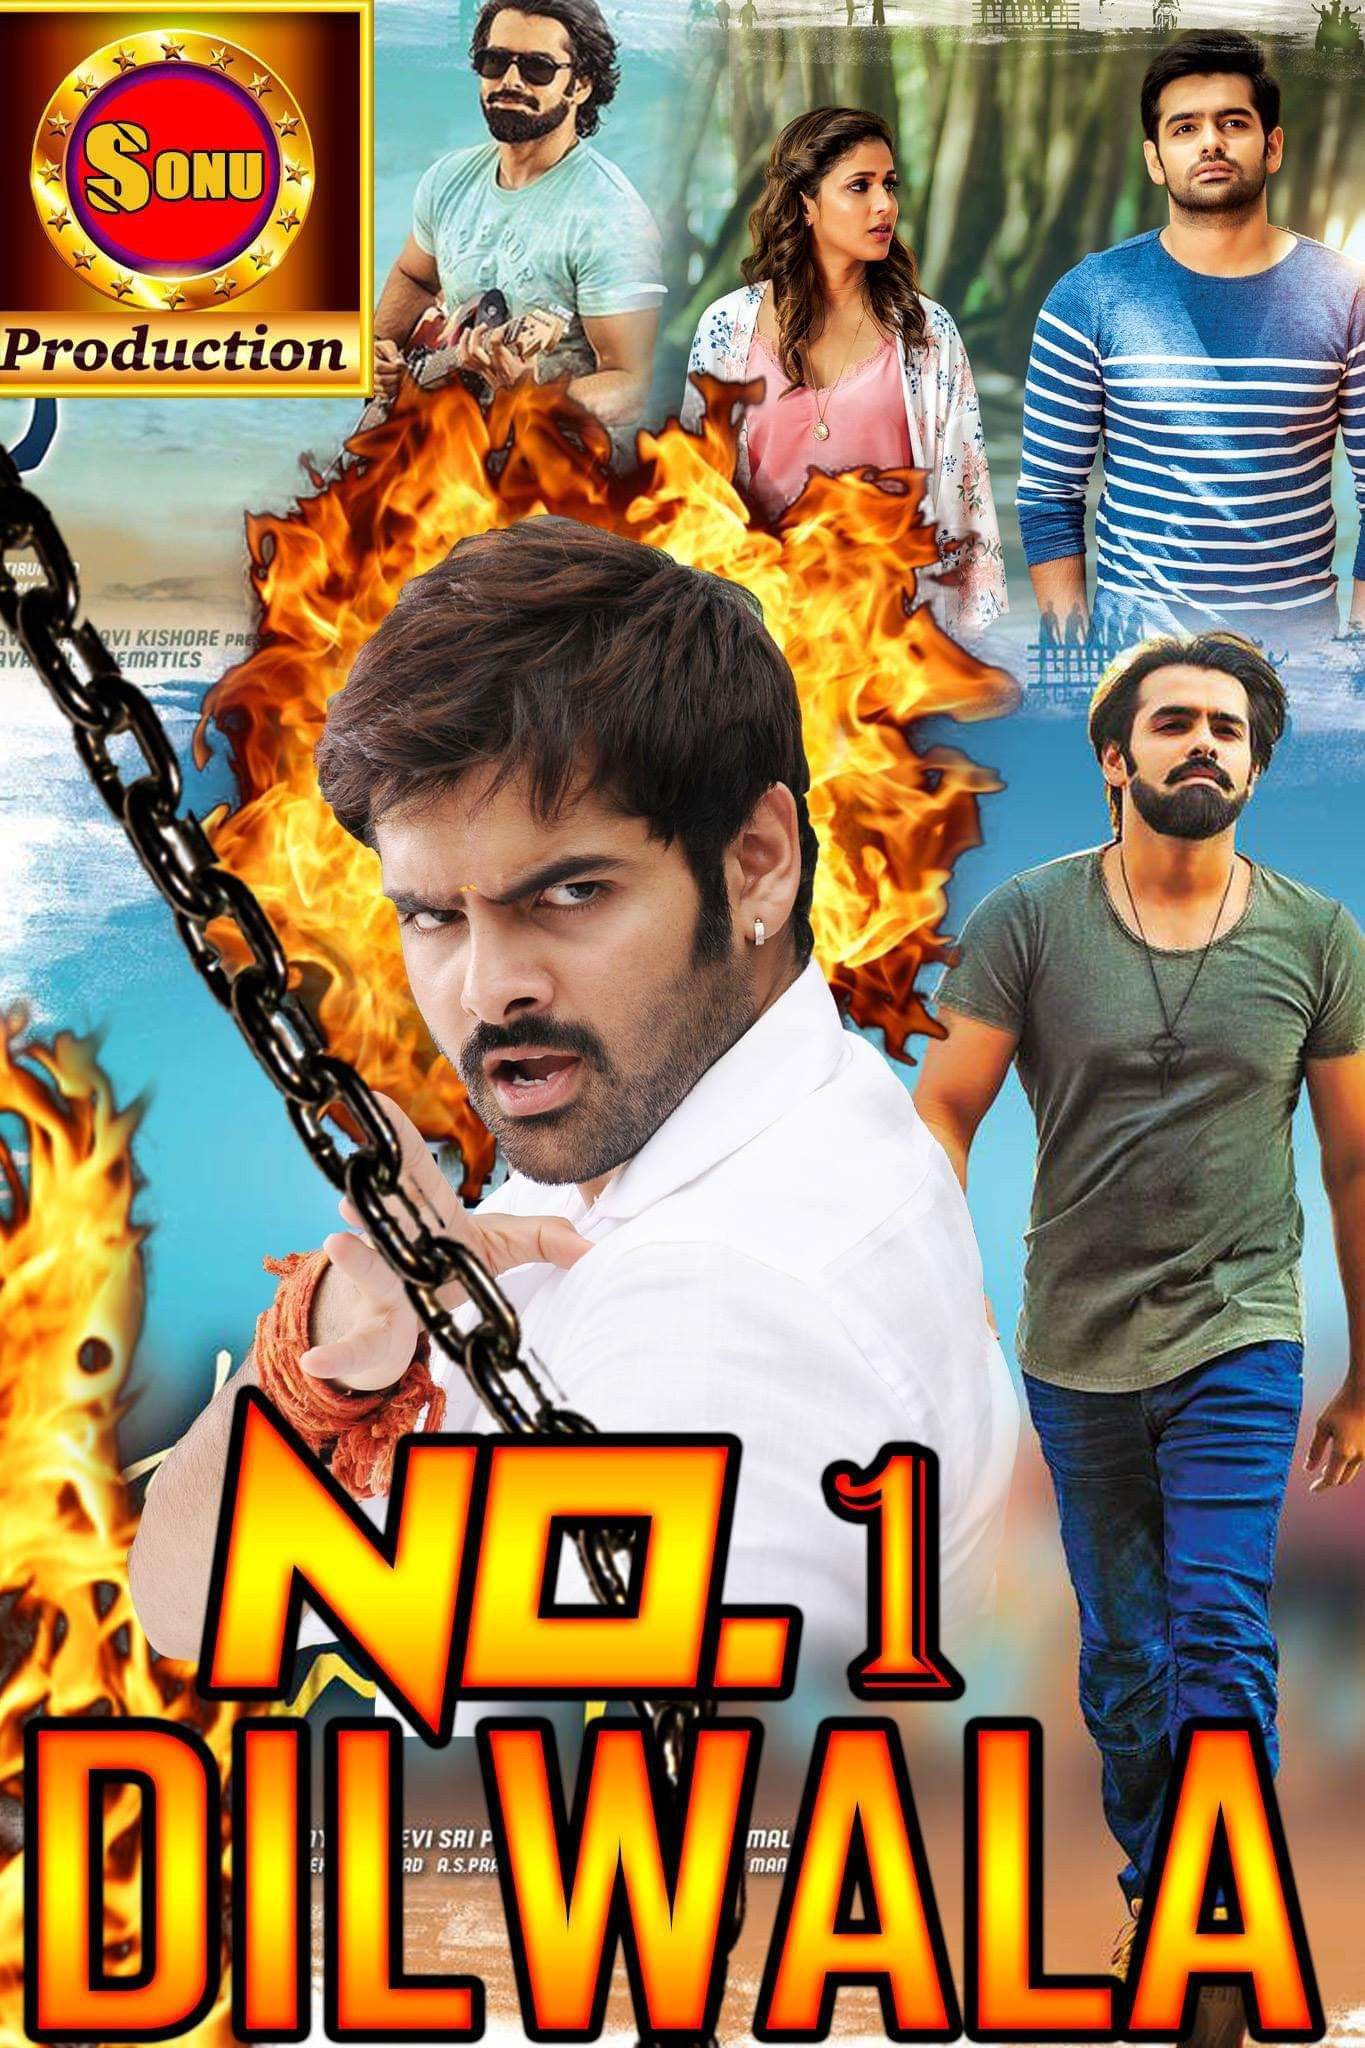 New Hindi Movei 2018 2019 Bolliwood: No.1 Dilwala (Vunadhi Okate Zindagi) Hindi Dubbed 720p